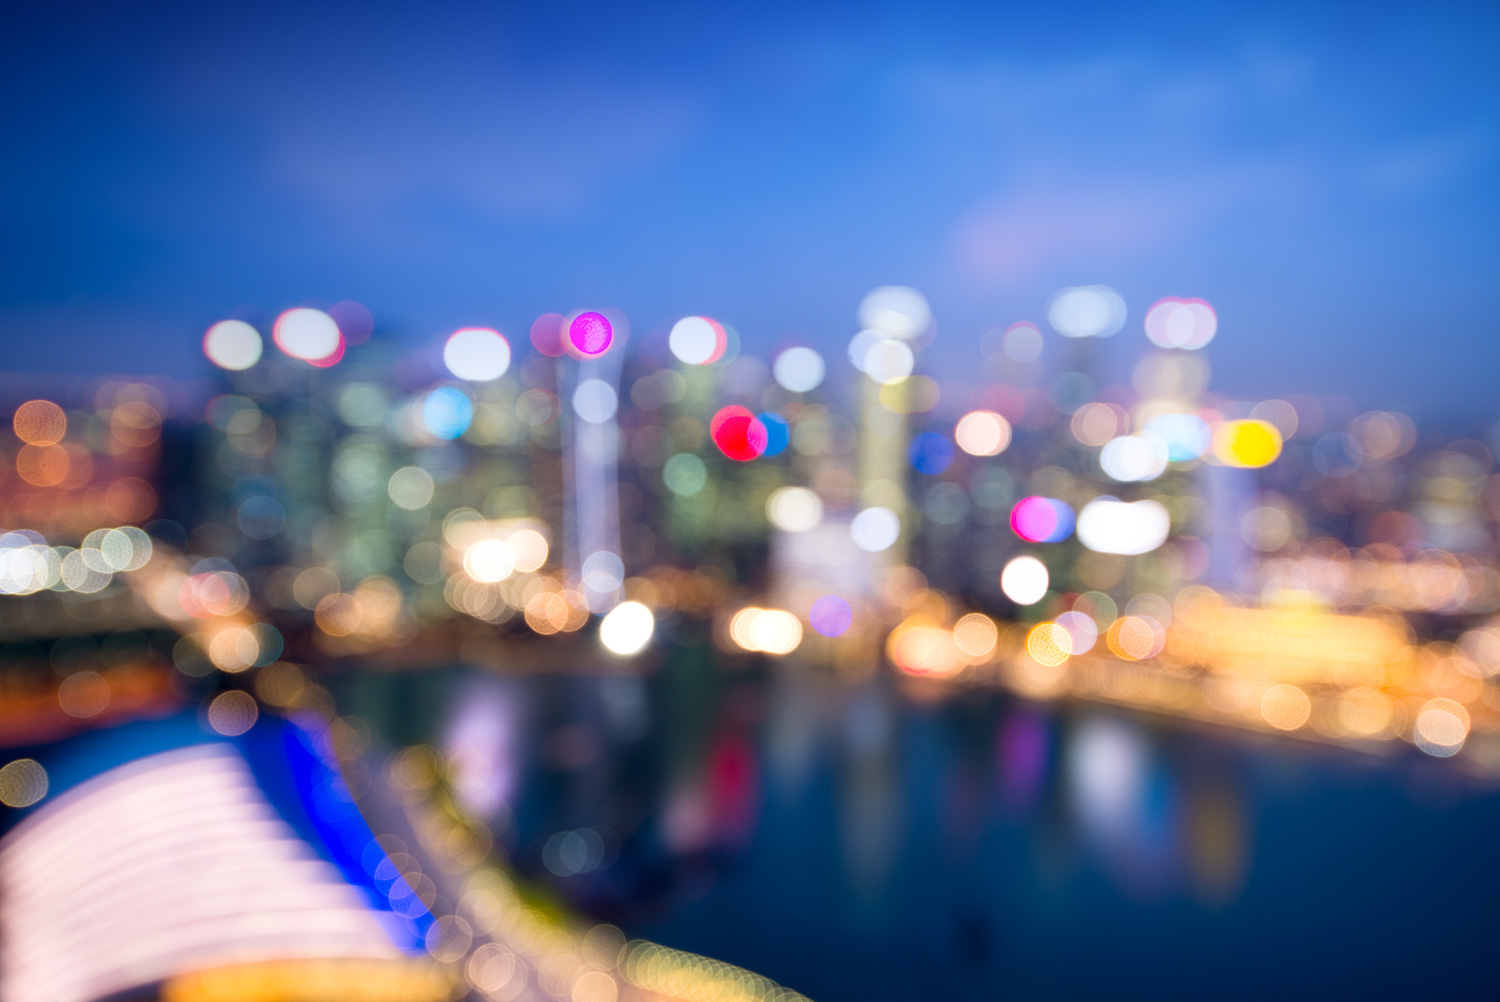 Singapore - Out of Focus Cityscape Bokeh Images